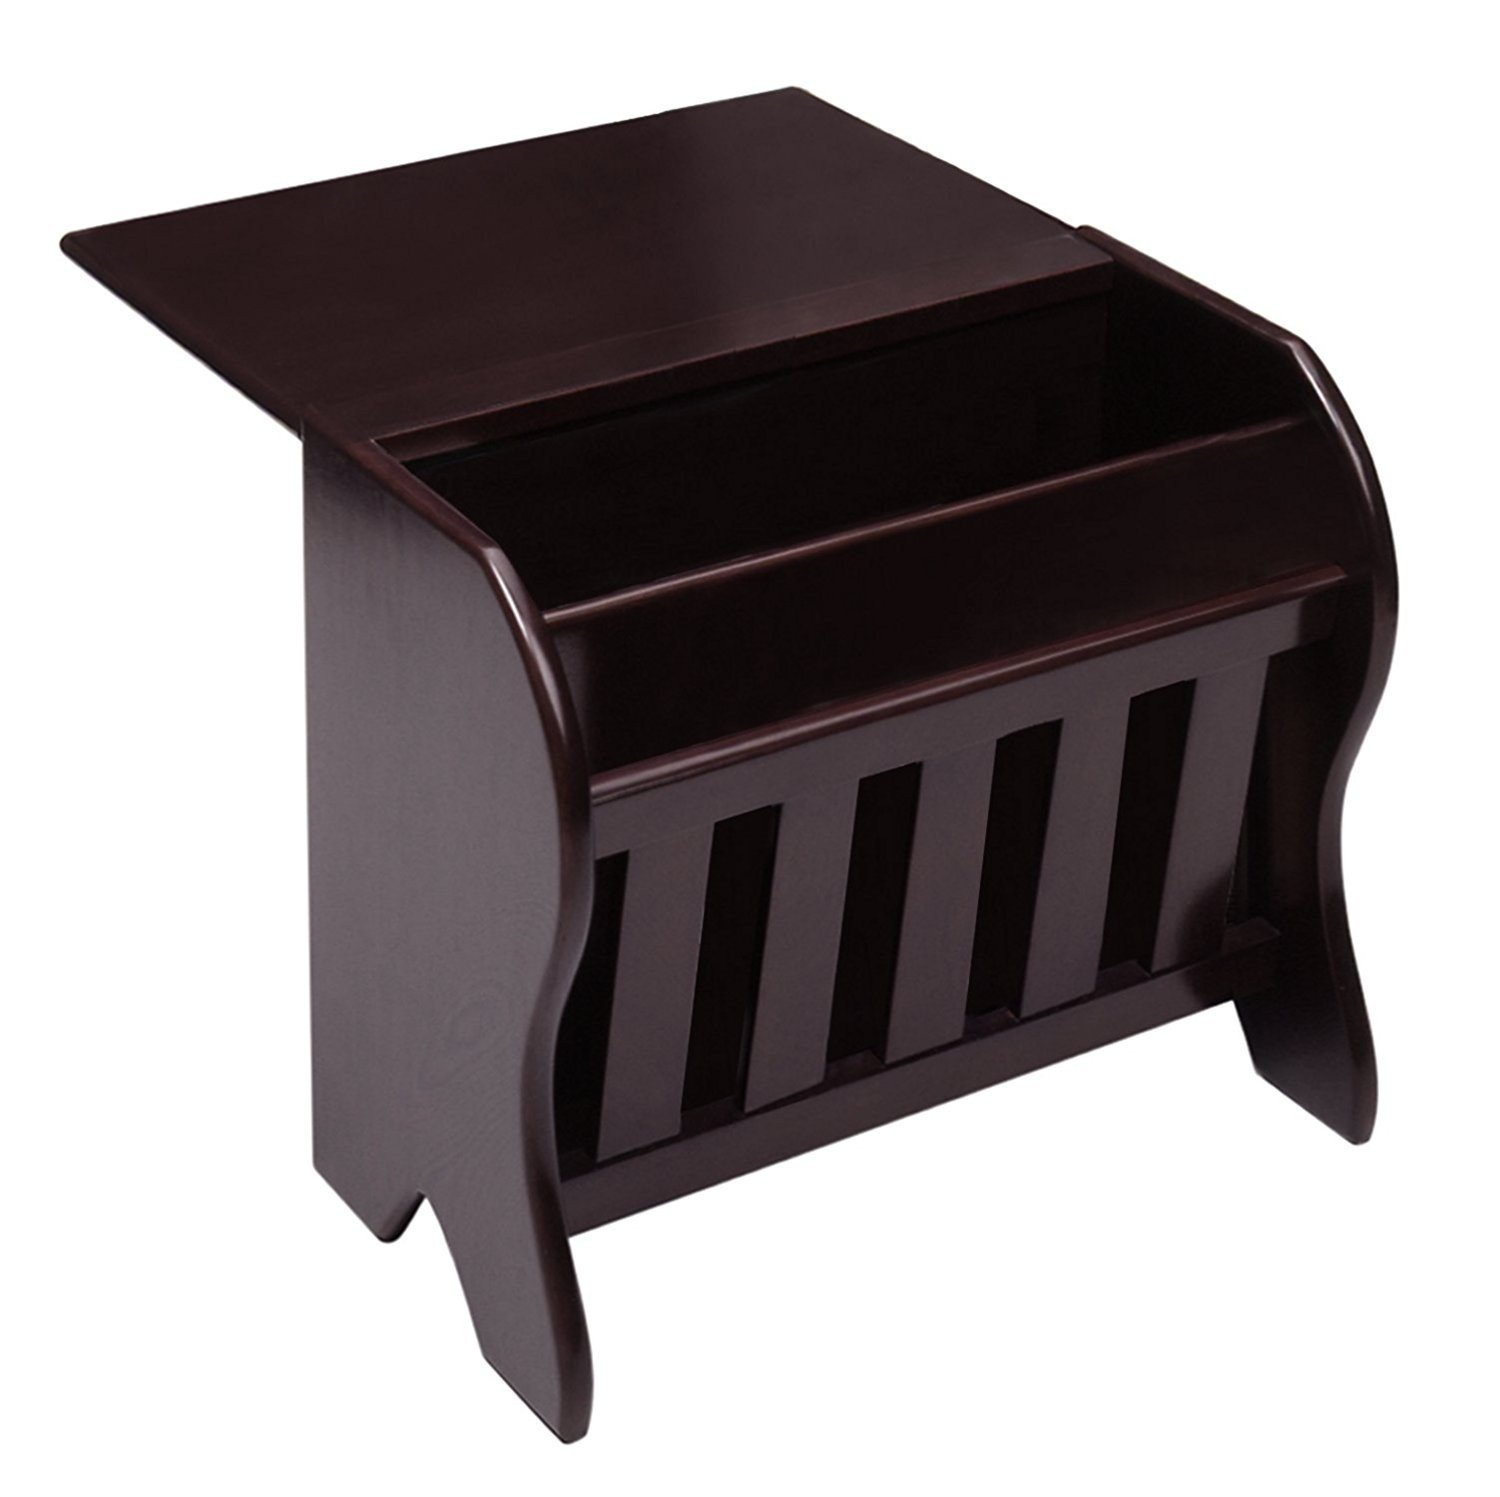 modern magazine rack table find accent with get quotations indoor multi function study computer desk bedroom living room style end shabby chic tables tool storage cabinets target